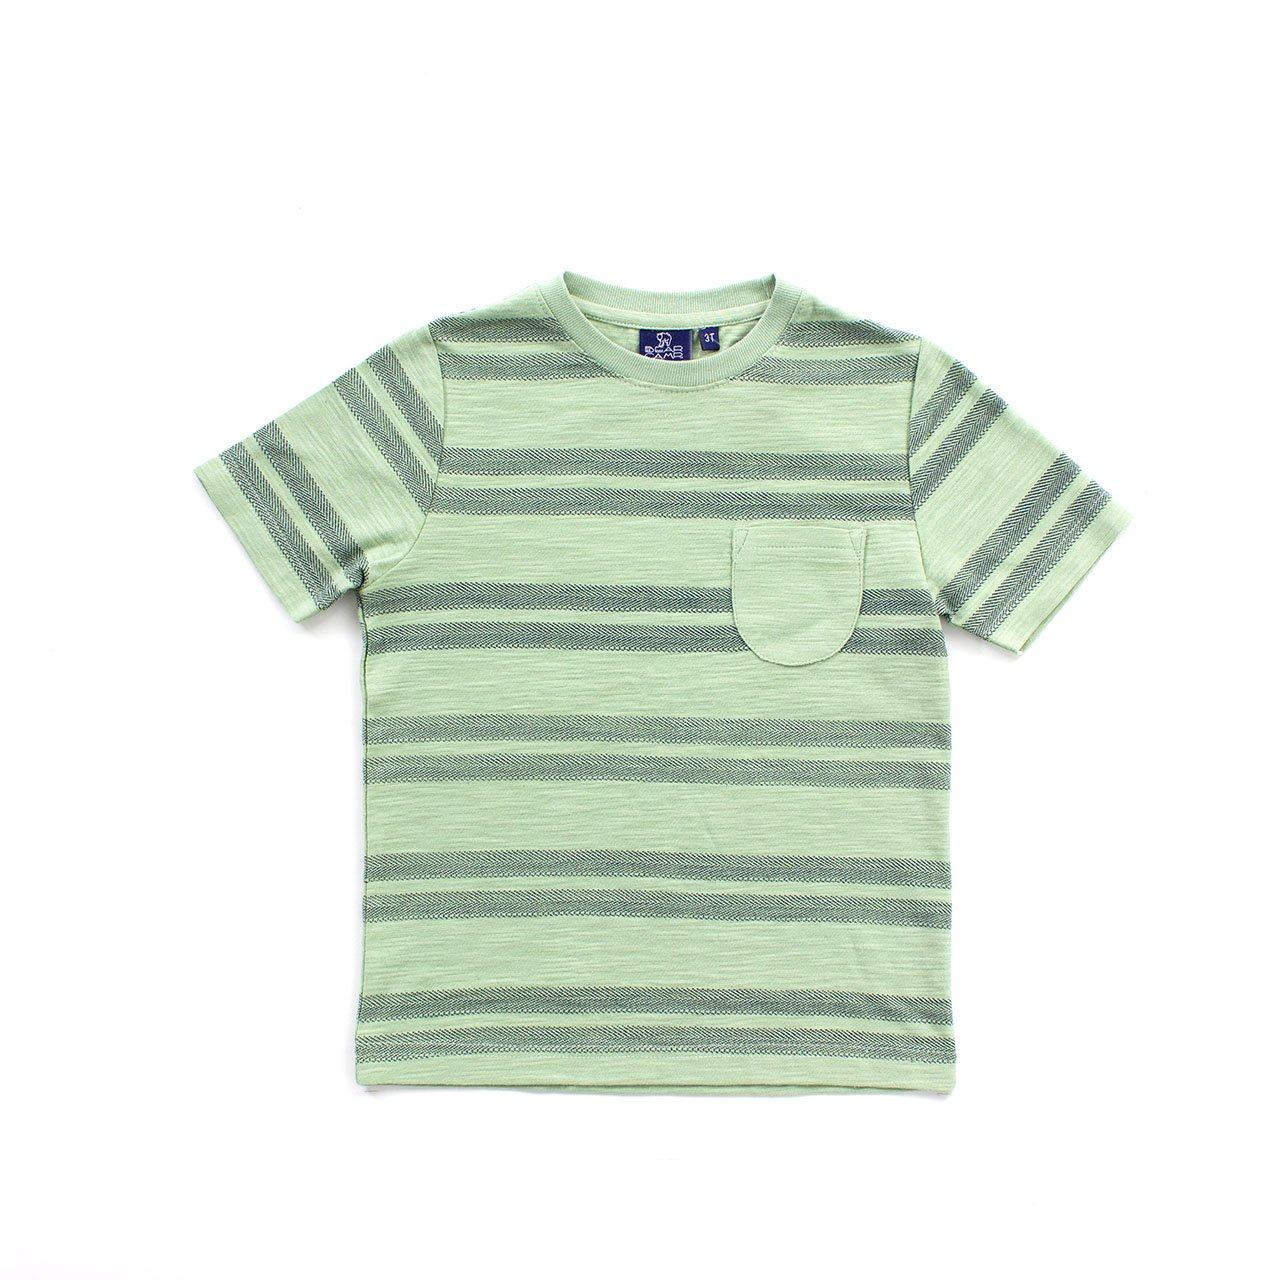 Toddler, Short Sleeve Tee - Lane Tee Toddler